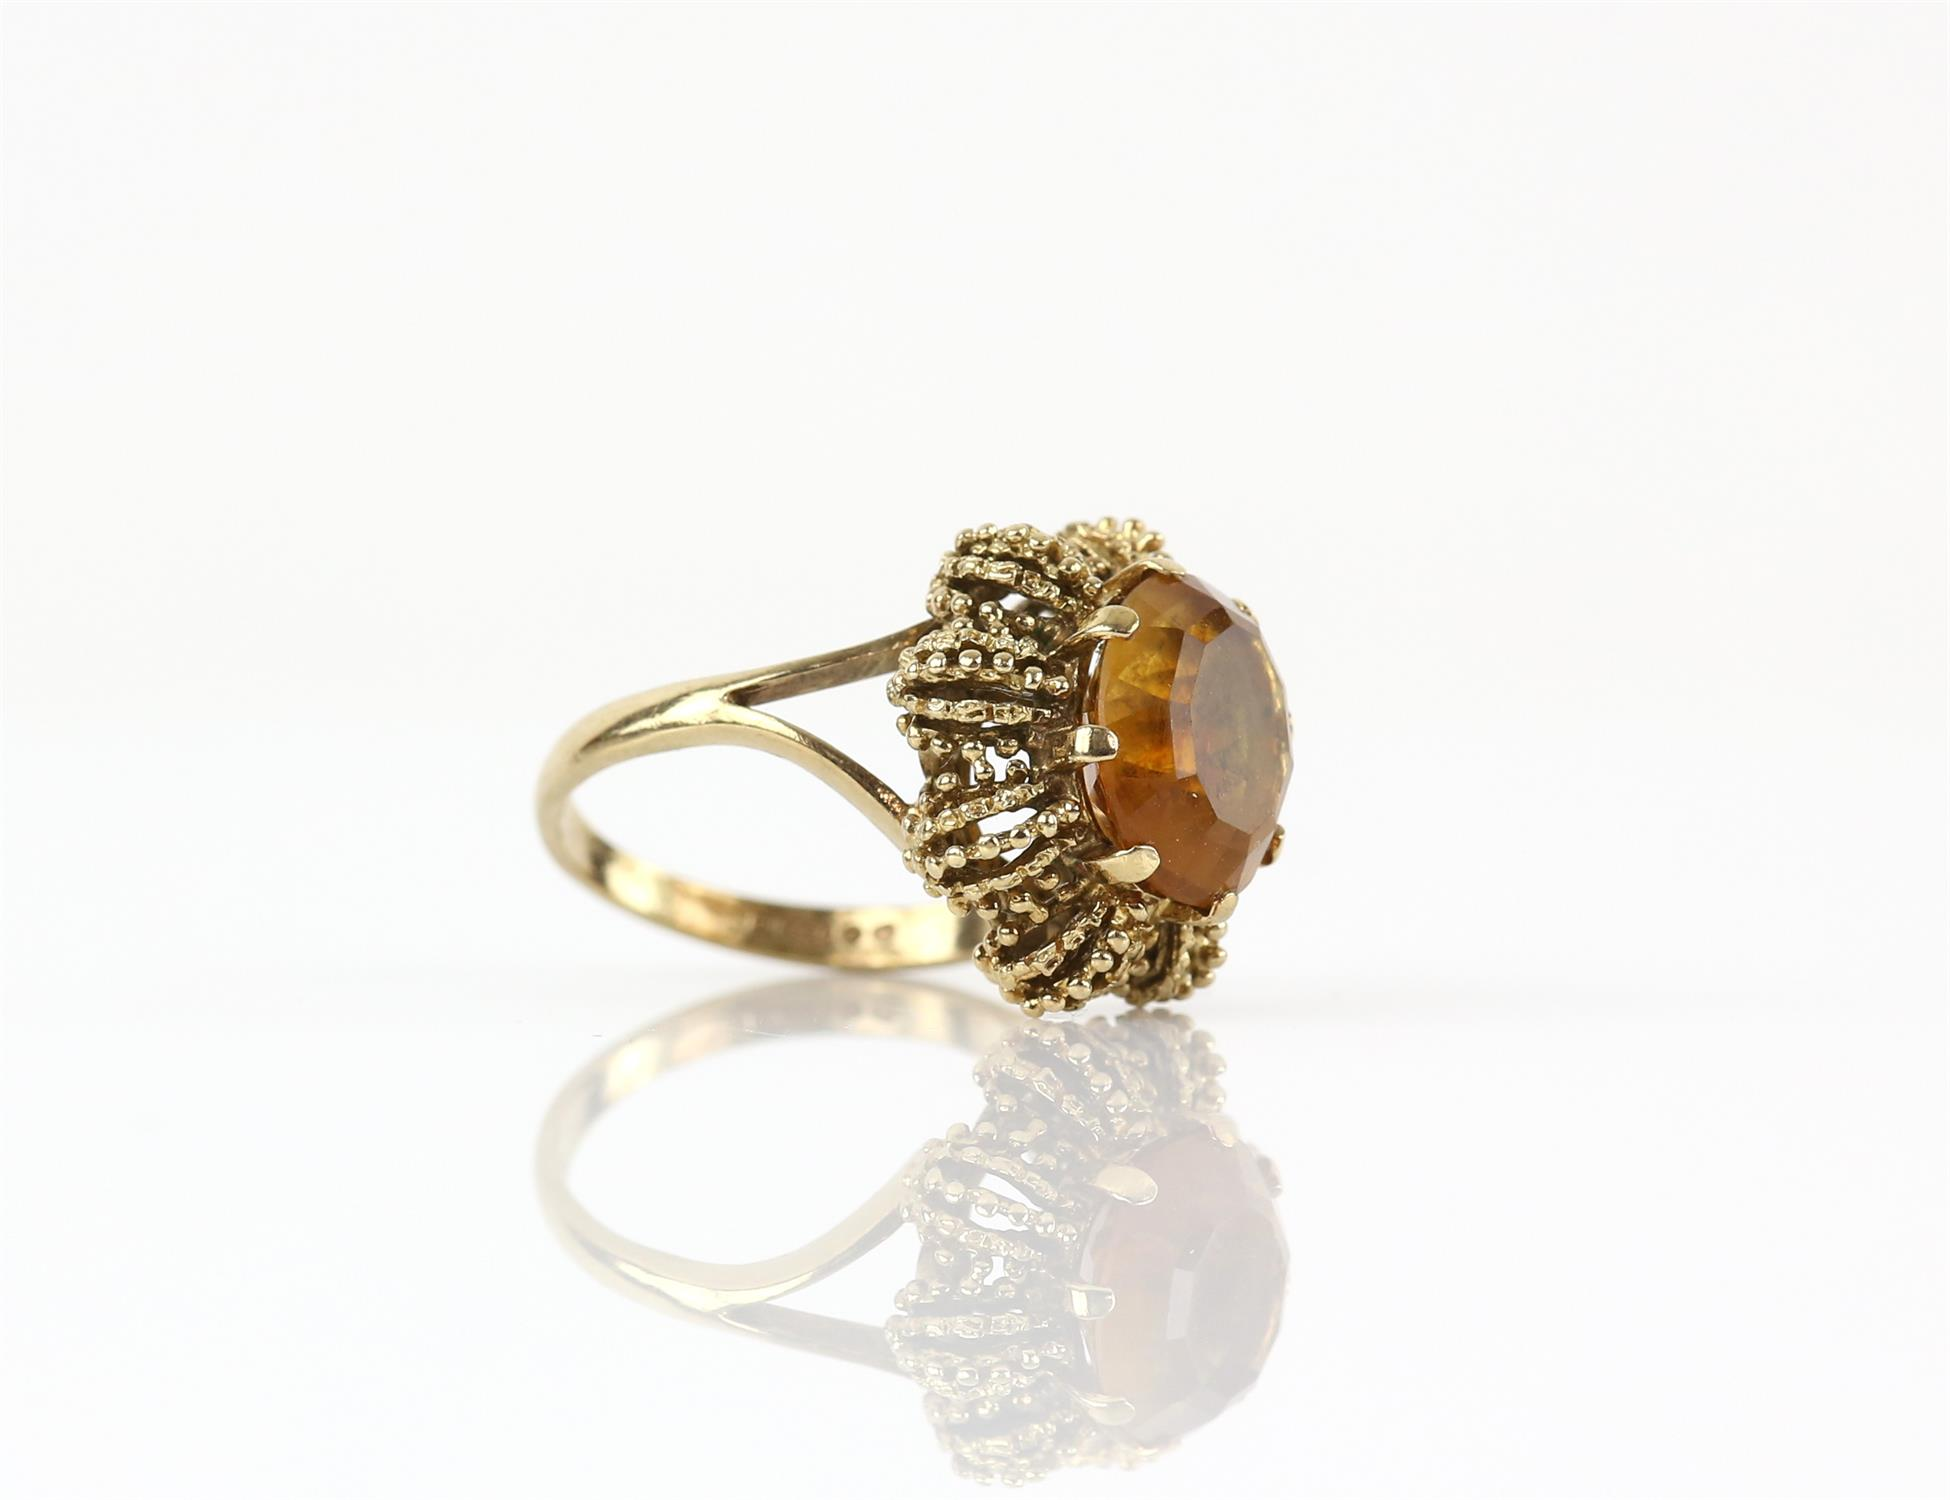 Vintage citrine ring, mixed cut citrine, measuring 12.1 x 10 mm, in a textured 9 ct mount, - Image 2 of 3